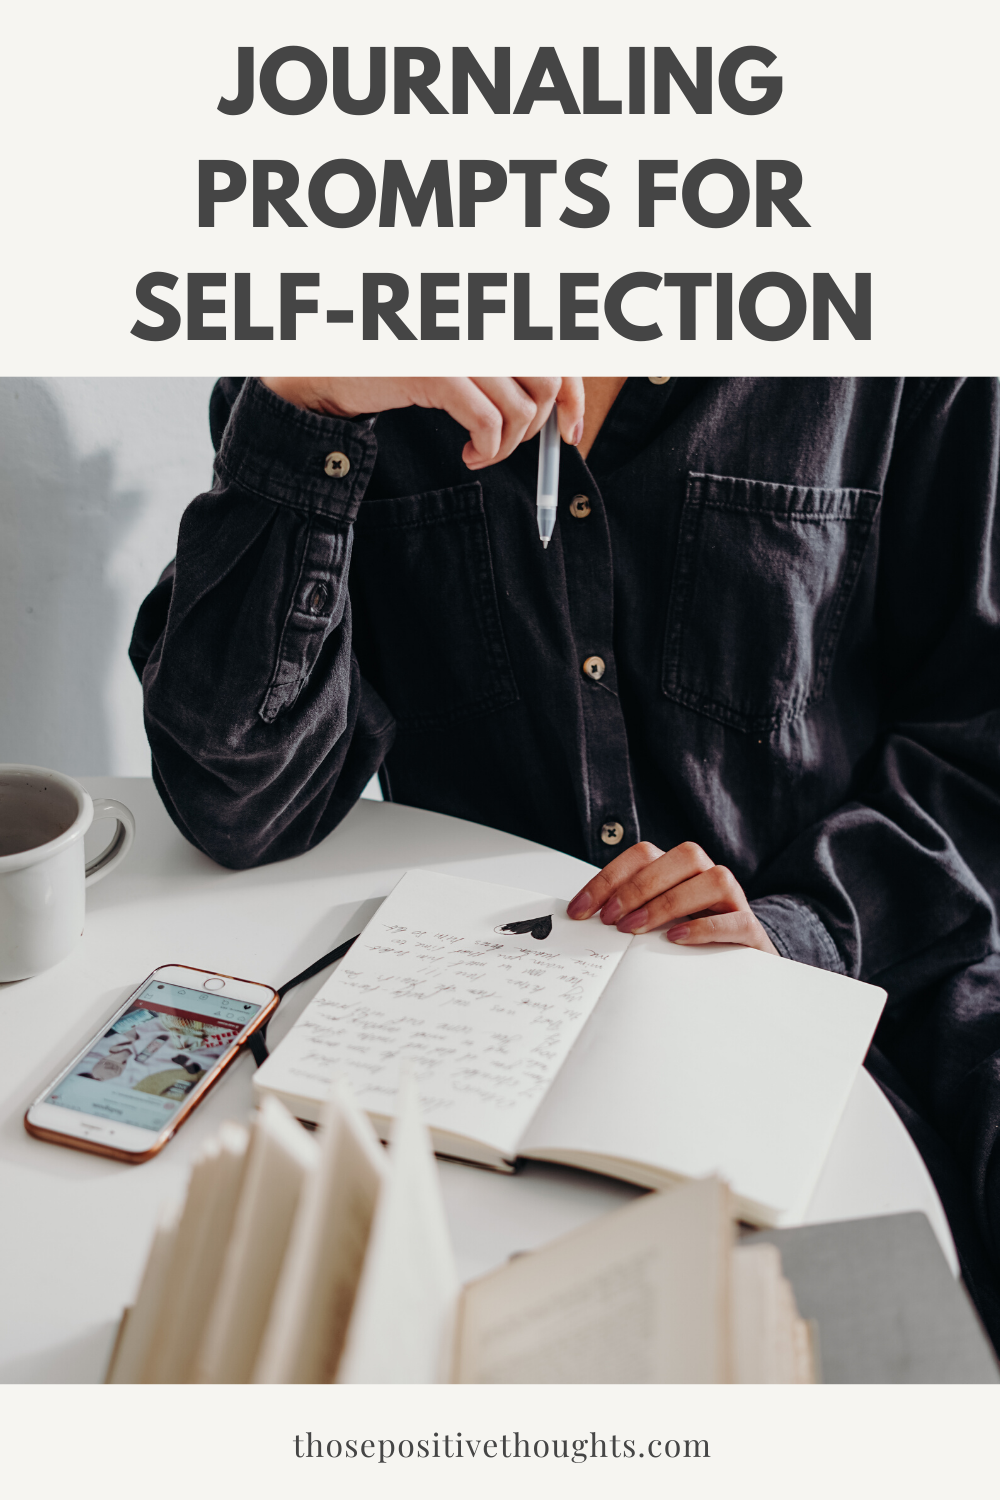 Journaling Prompts For Self-Reflection